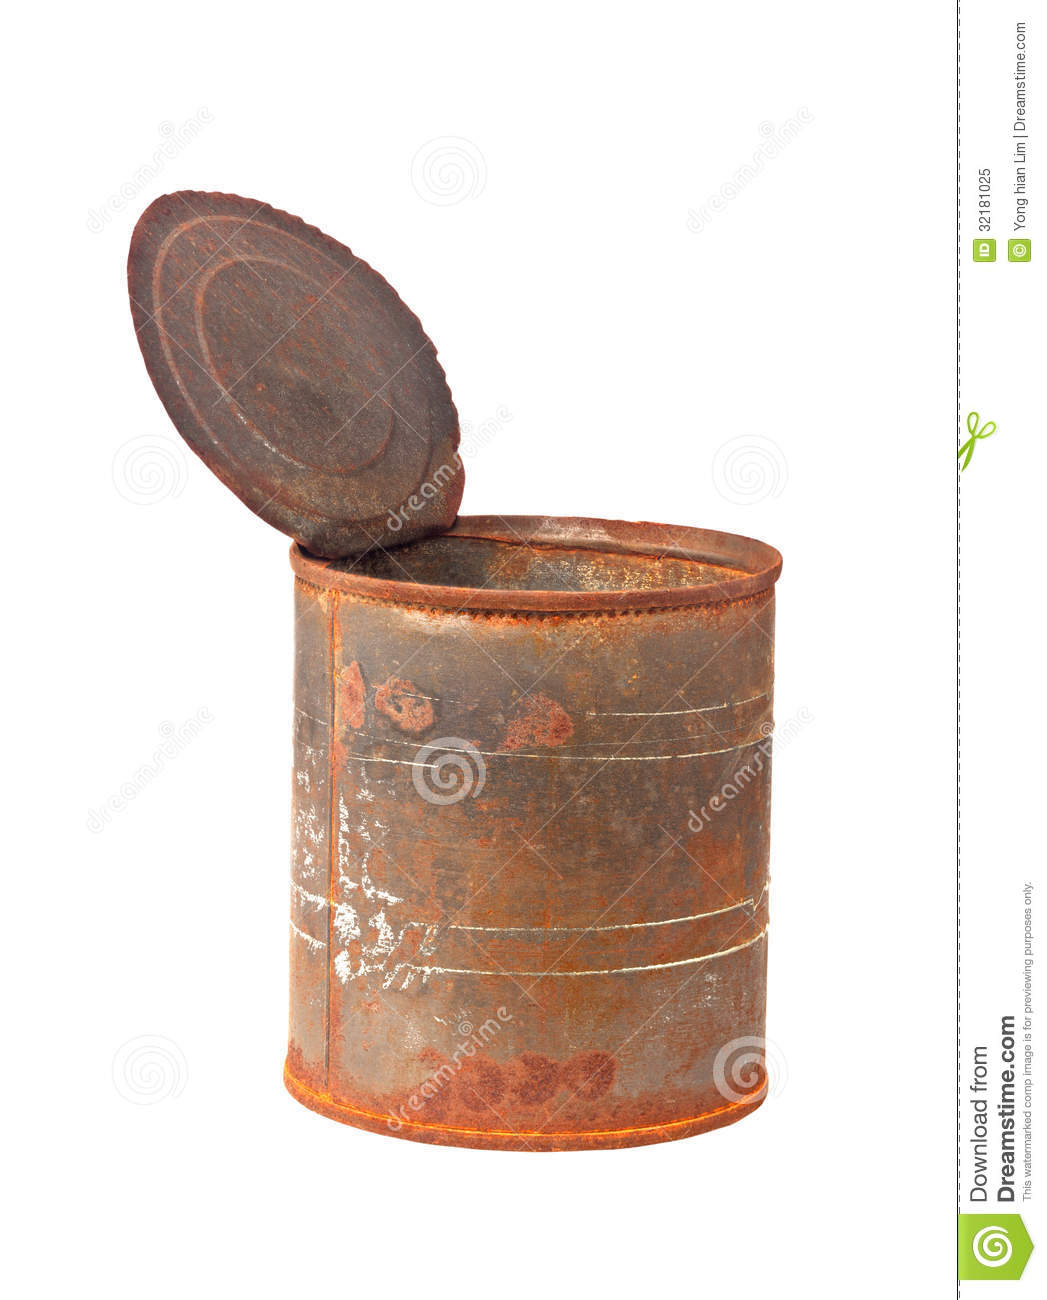 Old Rusty Tin Can Full Of 20 Pound Notes Stock Images ... |Rusty Tin